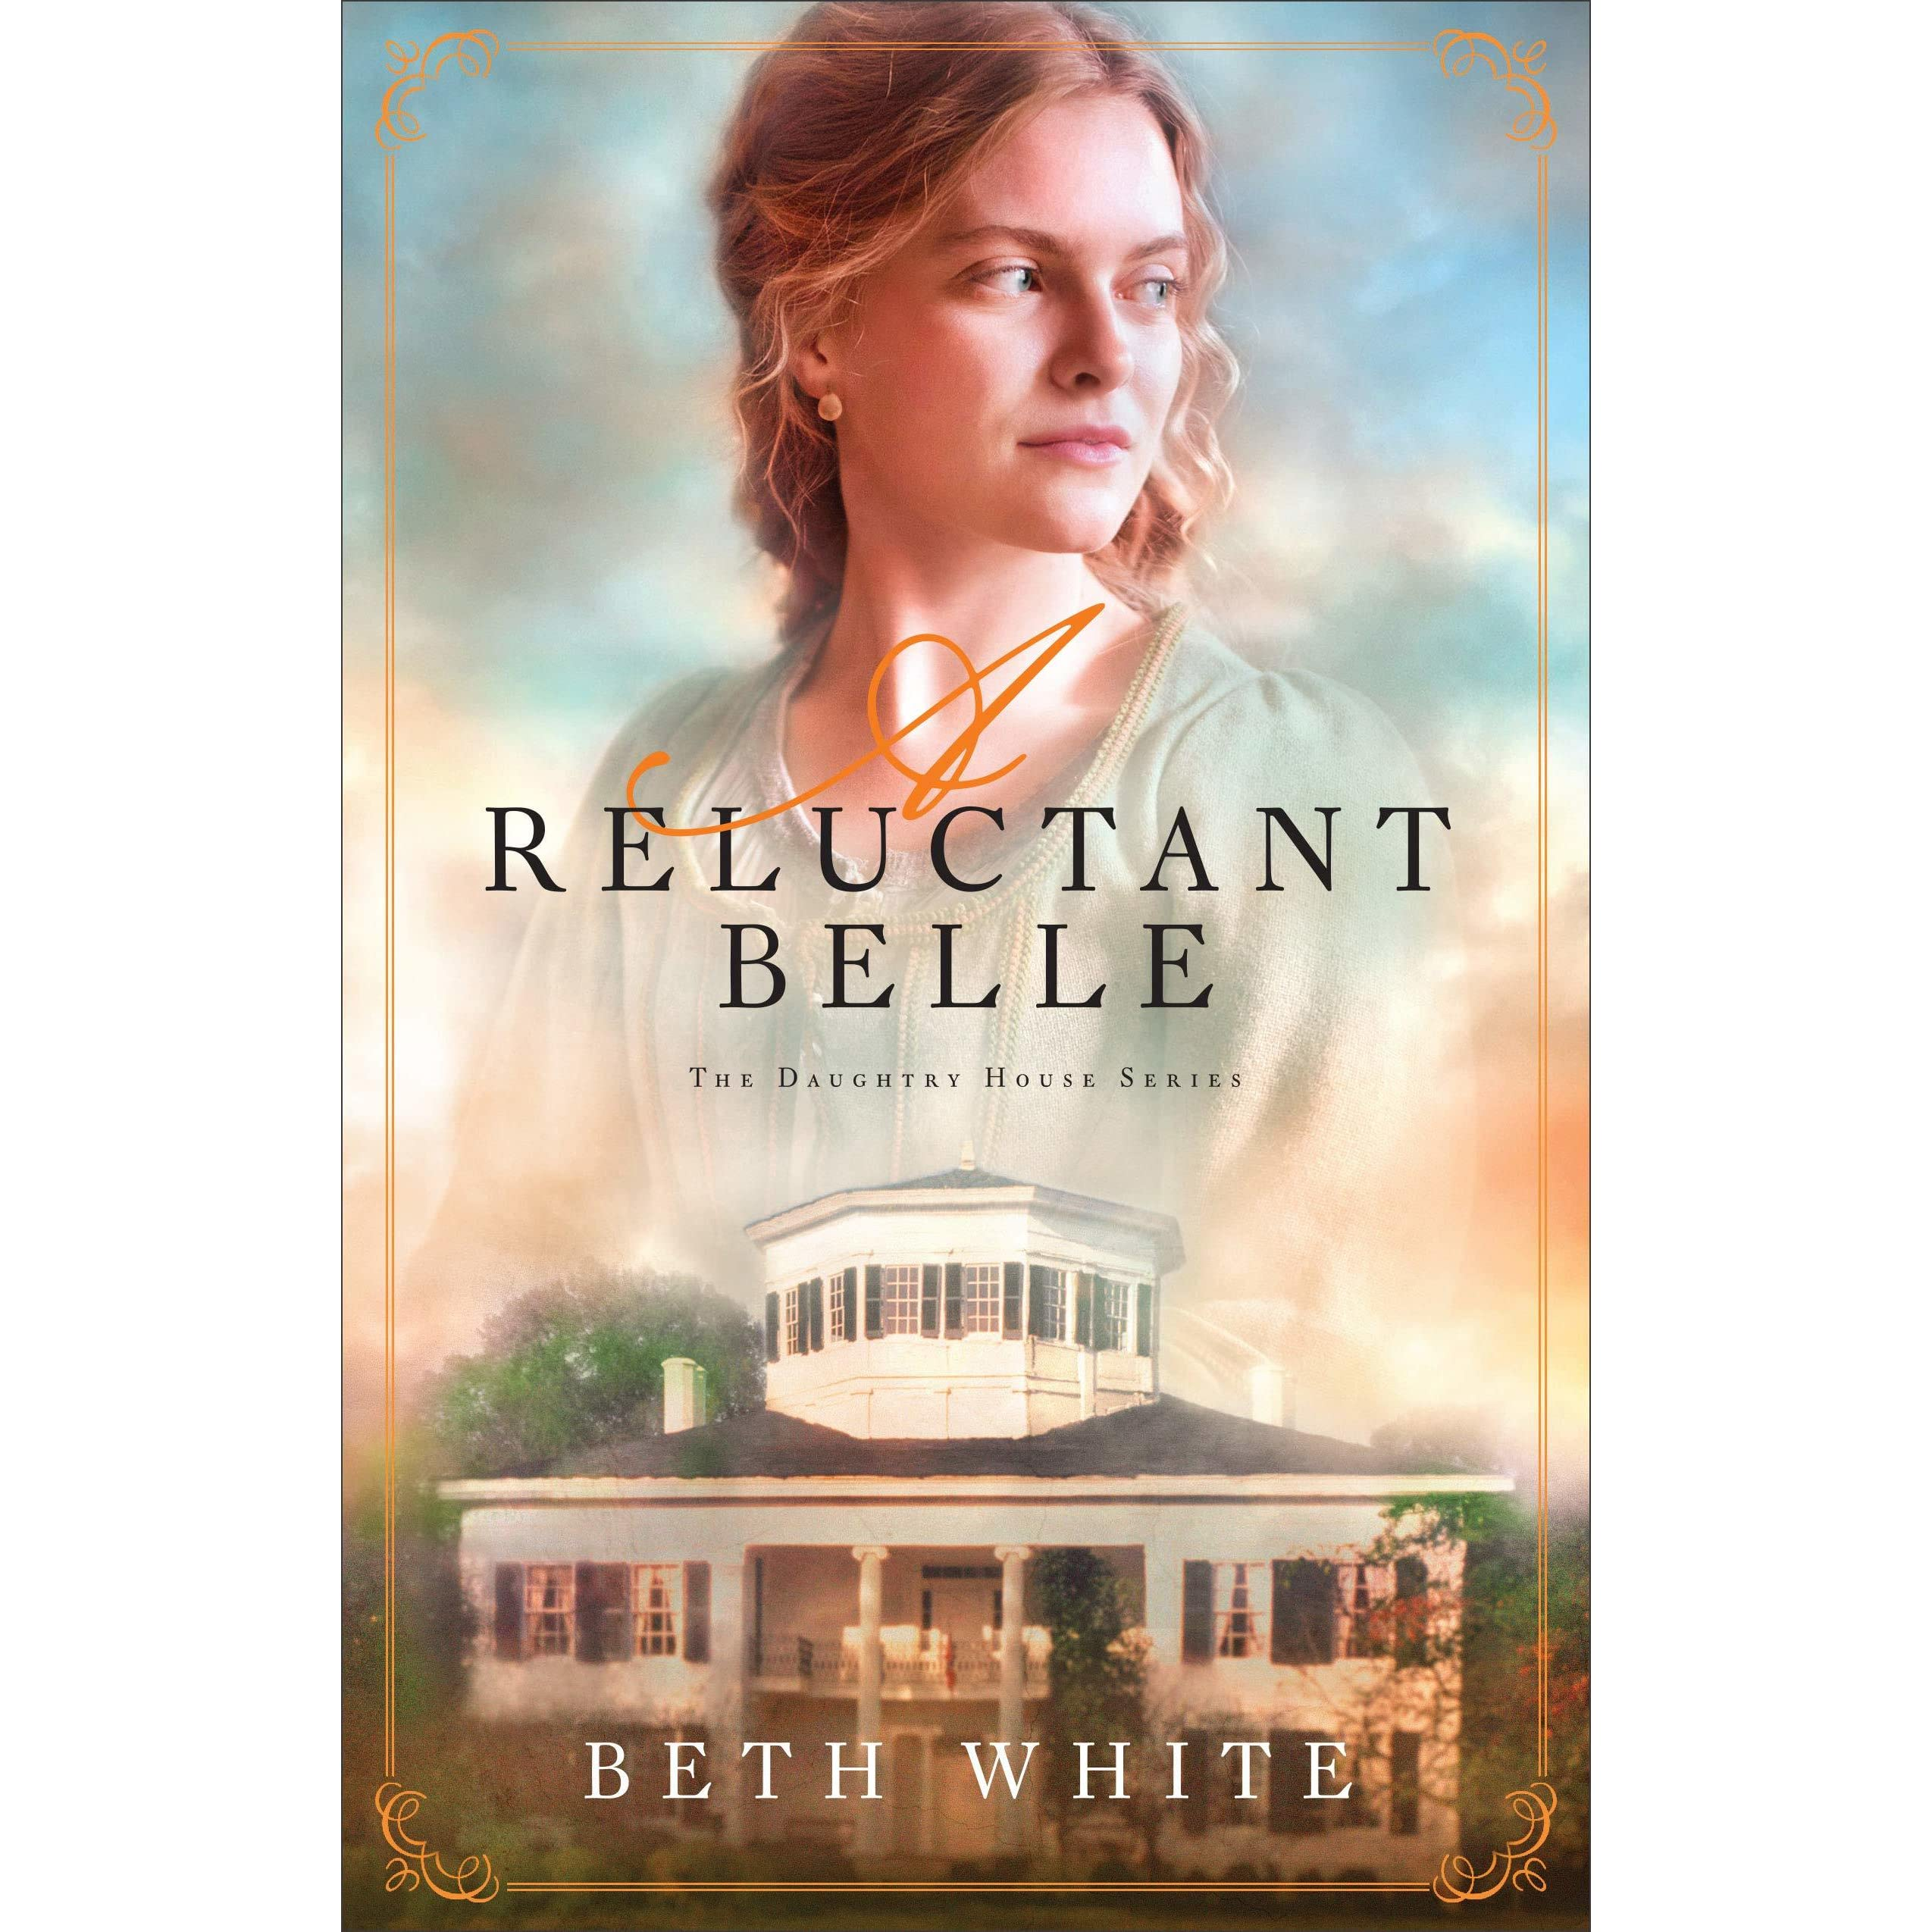 Image result for A Reluctant Belle by Beth White